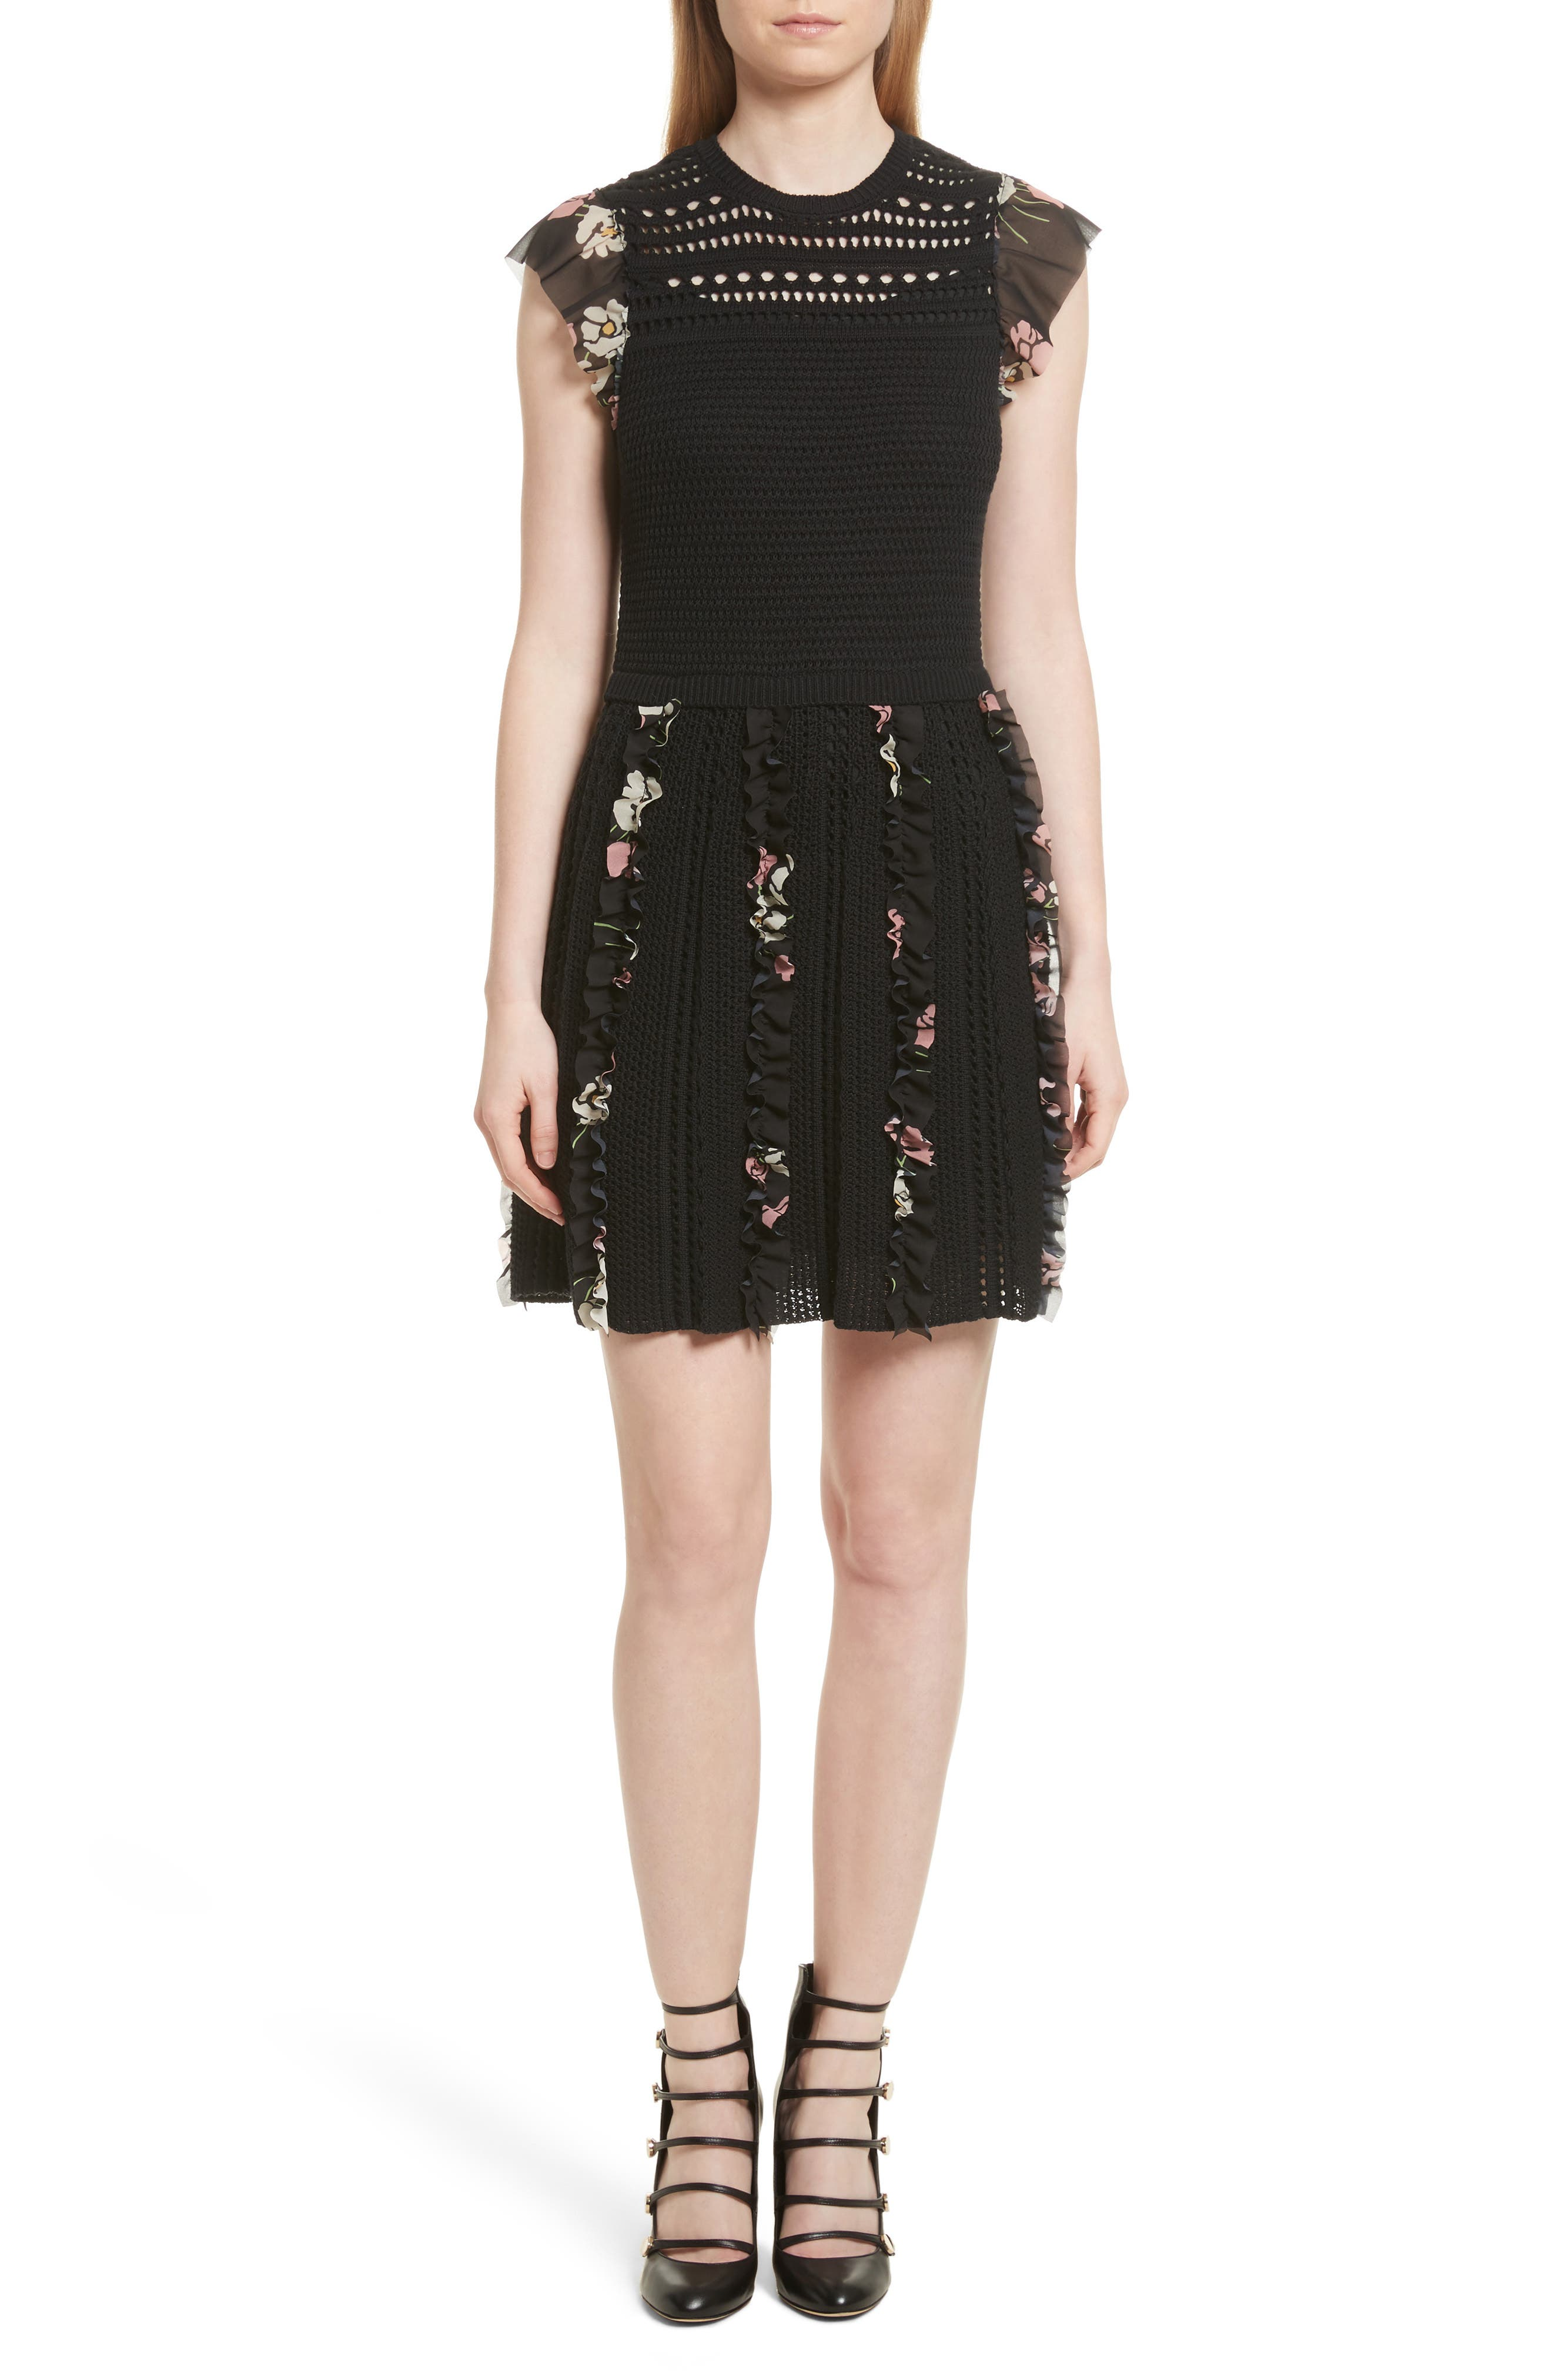 RED Valentino Ruffle Crochet Dress